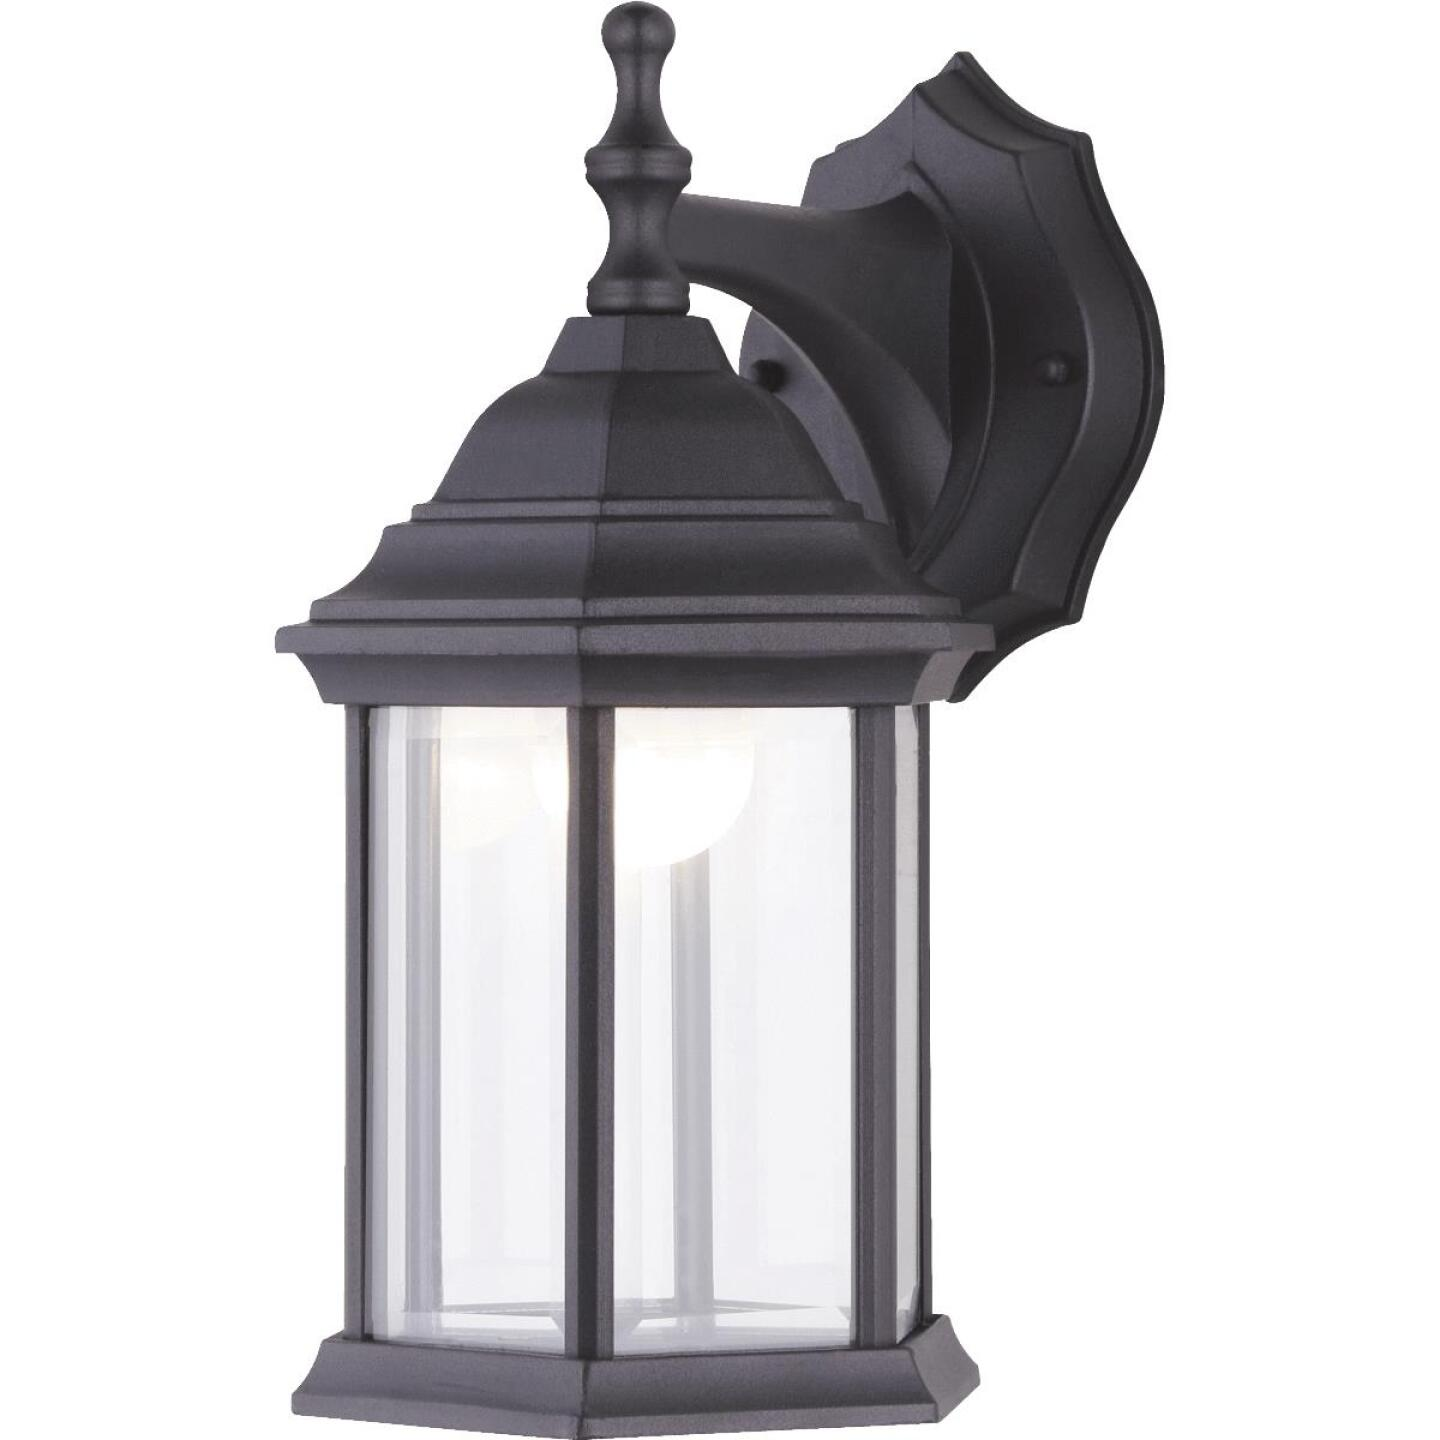 Canarm Black LED Outdoor Wall Fixture Image 1